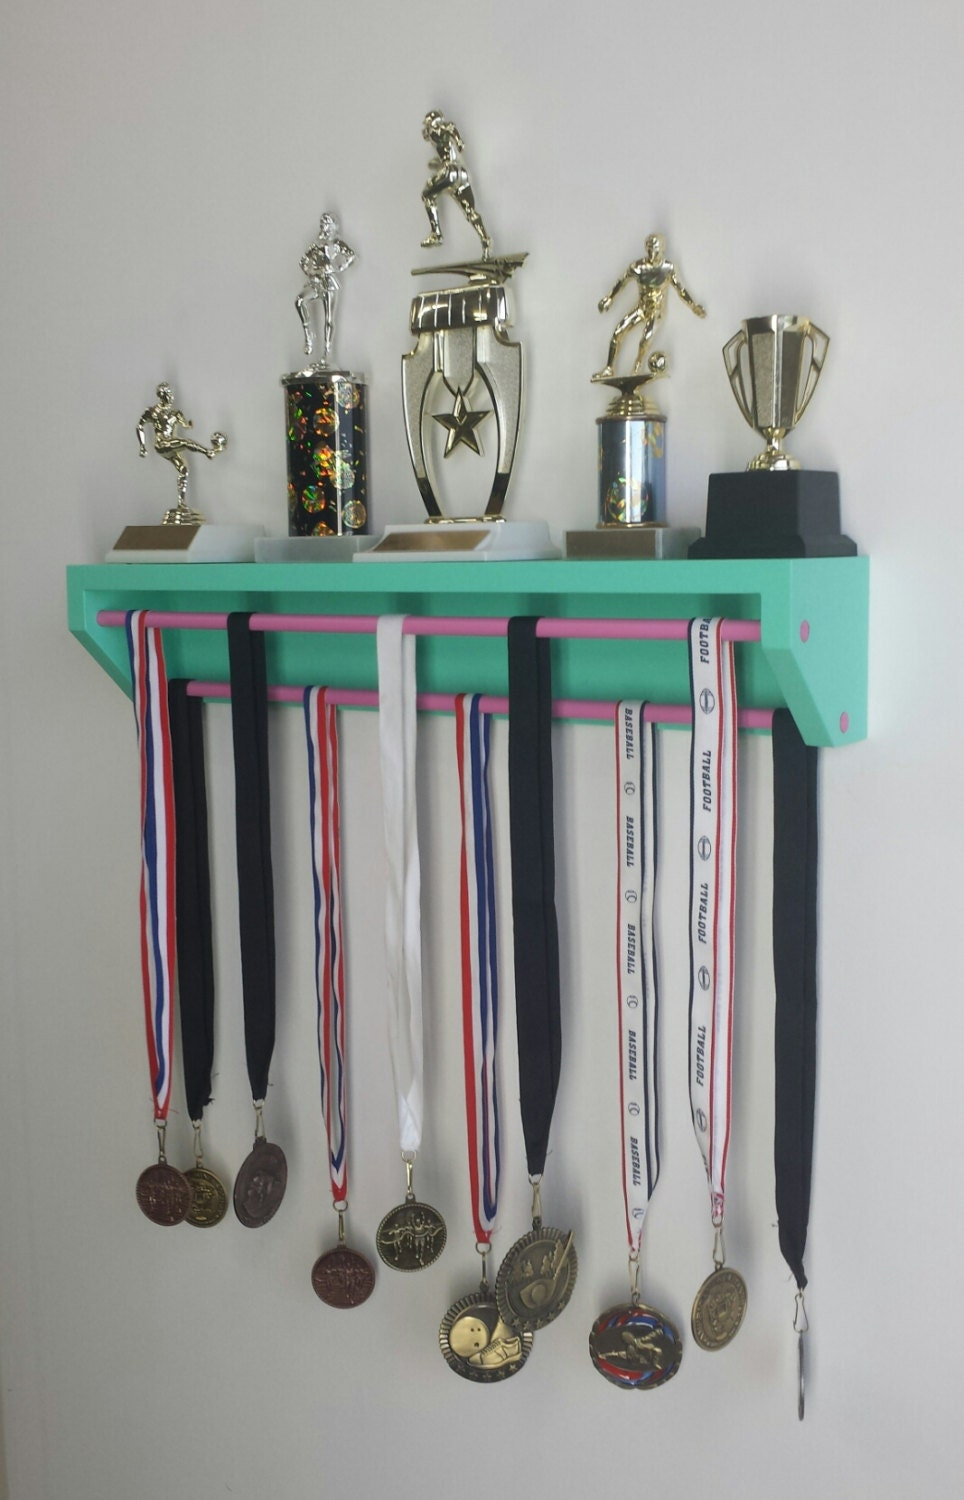 Trendy trophy display petite version aqua customize colors How to design a trophy